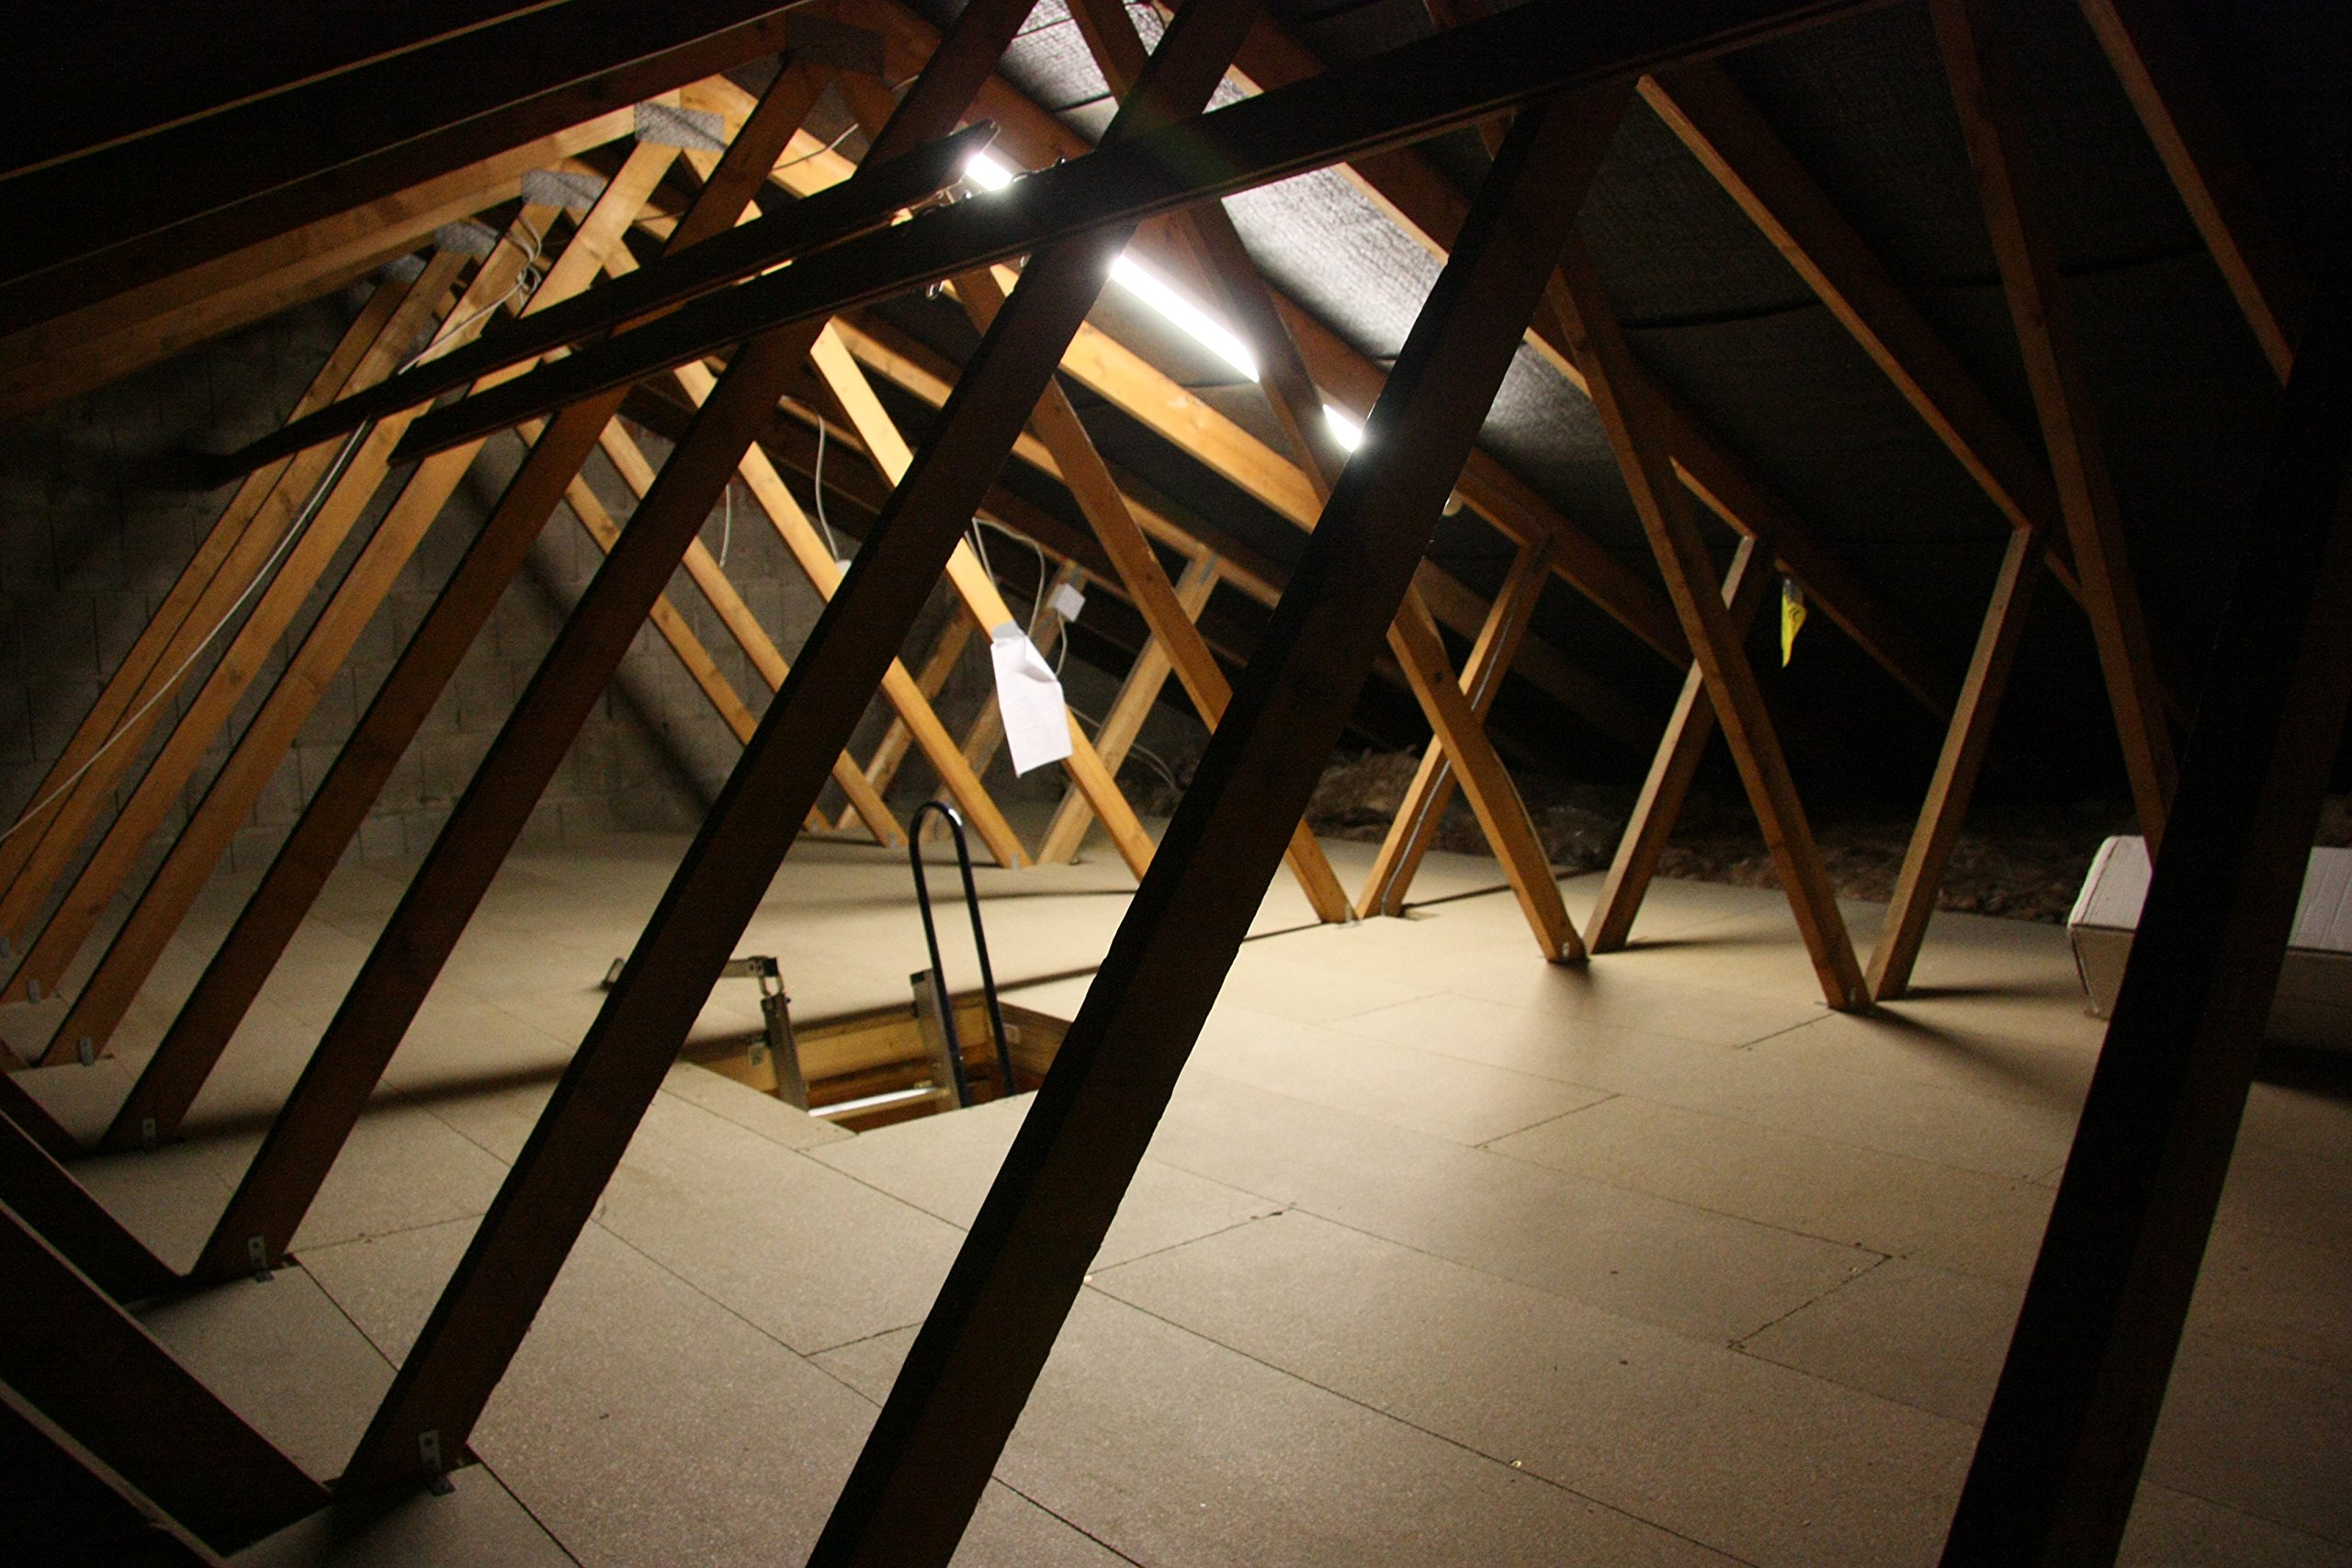 Attic Storage Kit for an Easy-to-fit and Strong Deck Above Your Insulation (16ft X 16ft Kit)